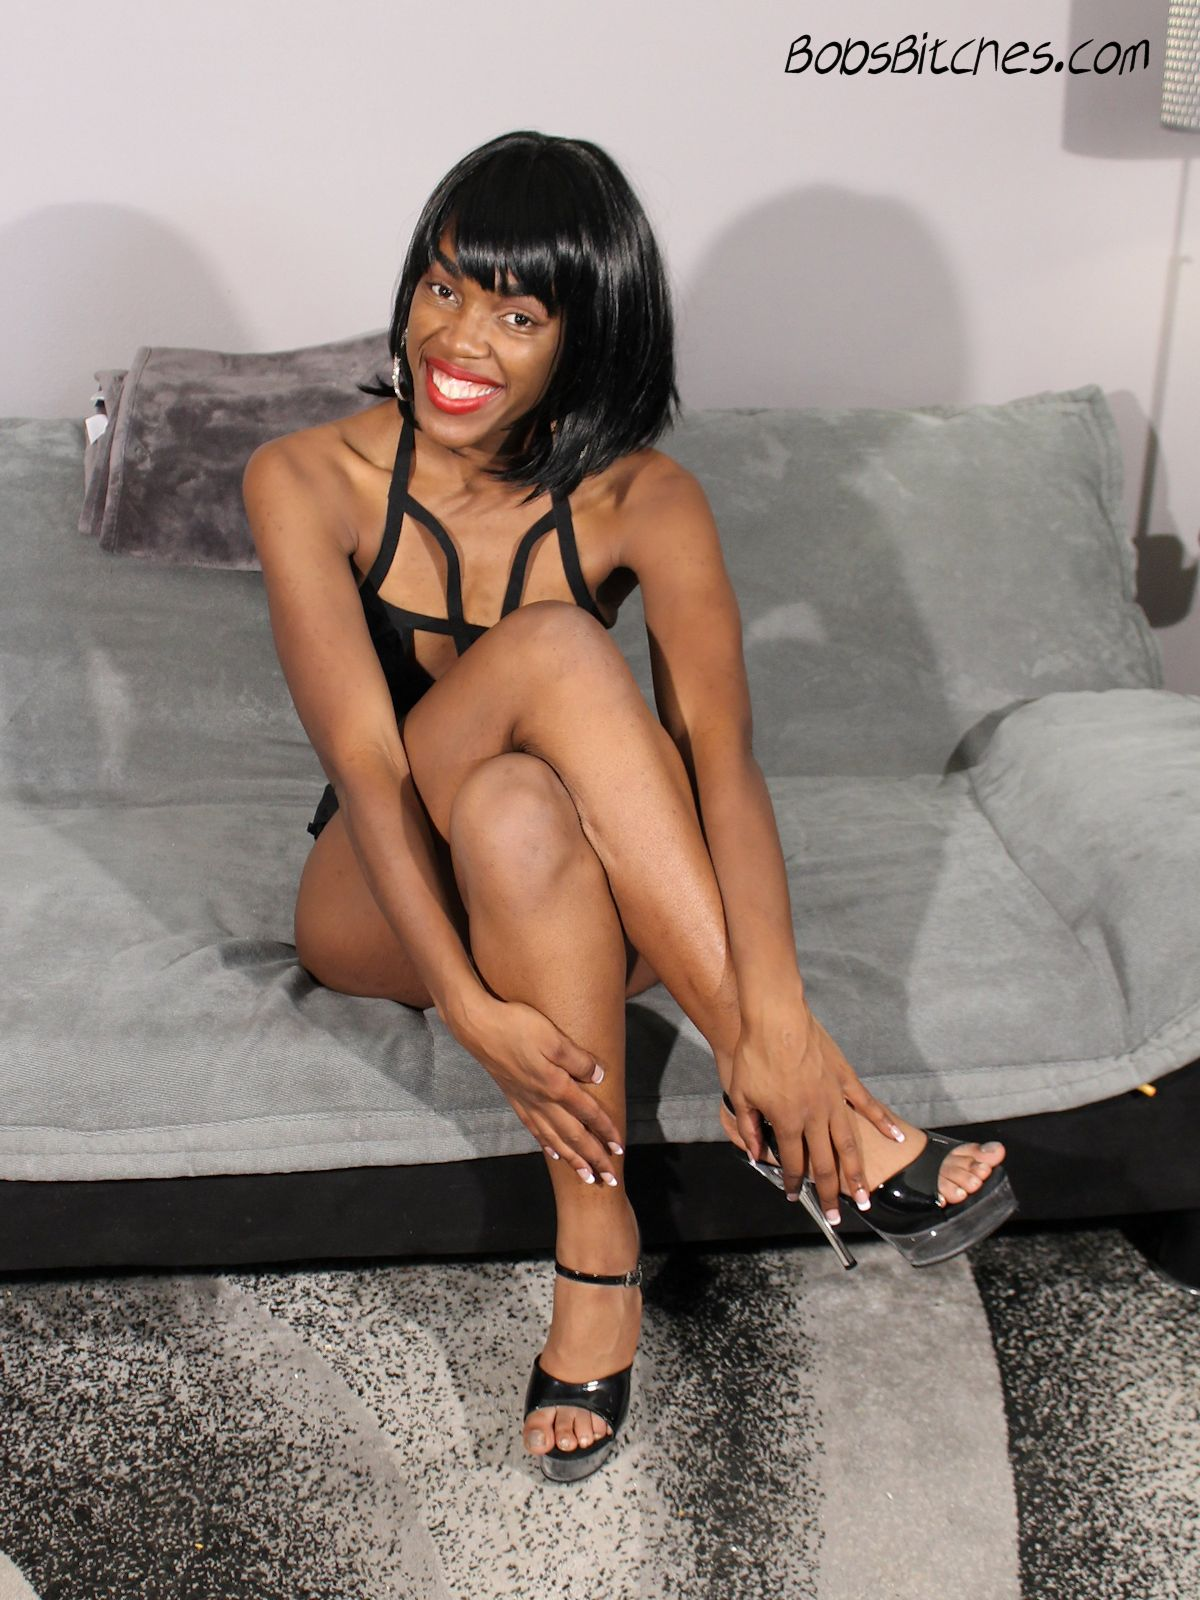 Thick lipped ebony beauty in high heels ready to suck a big white cock.